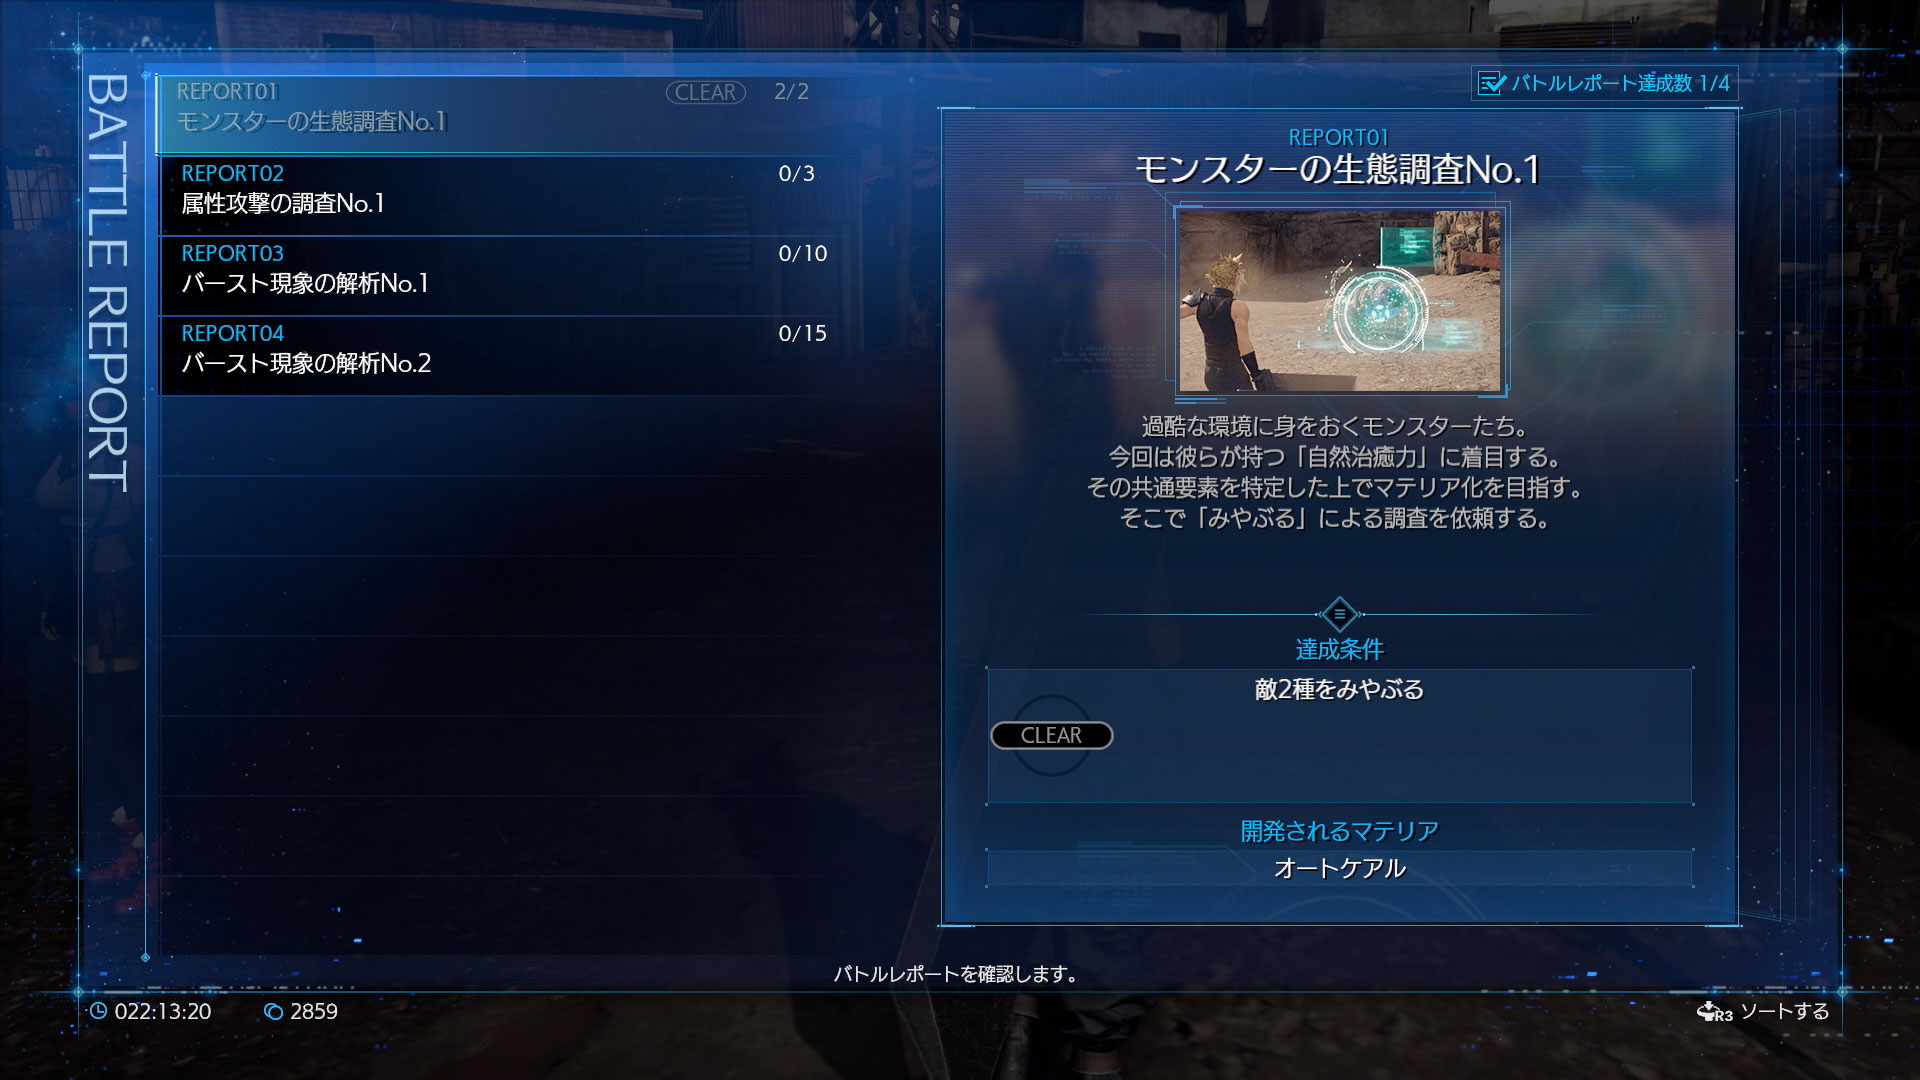 Final Fantasy VII Remake Screen 22